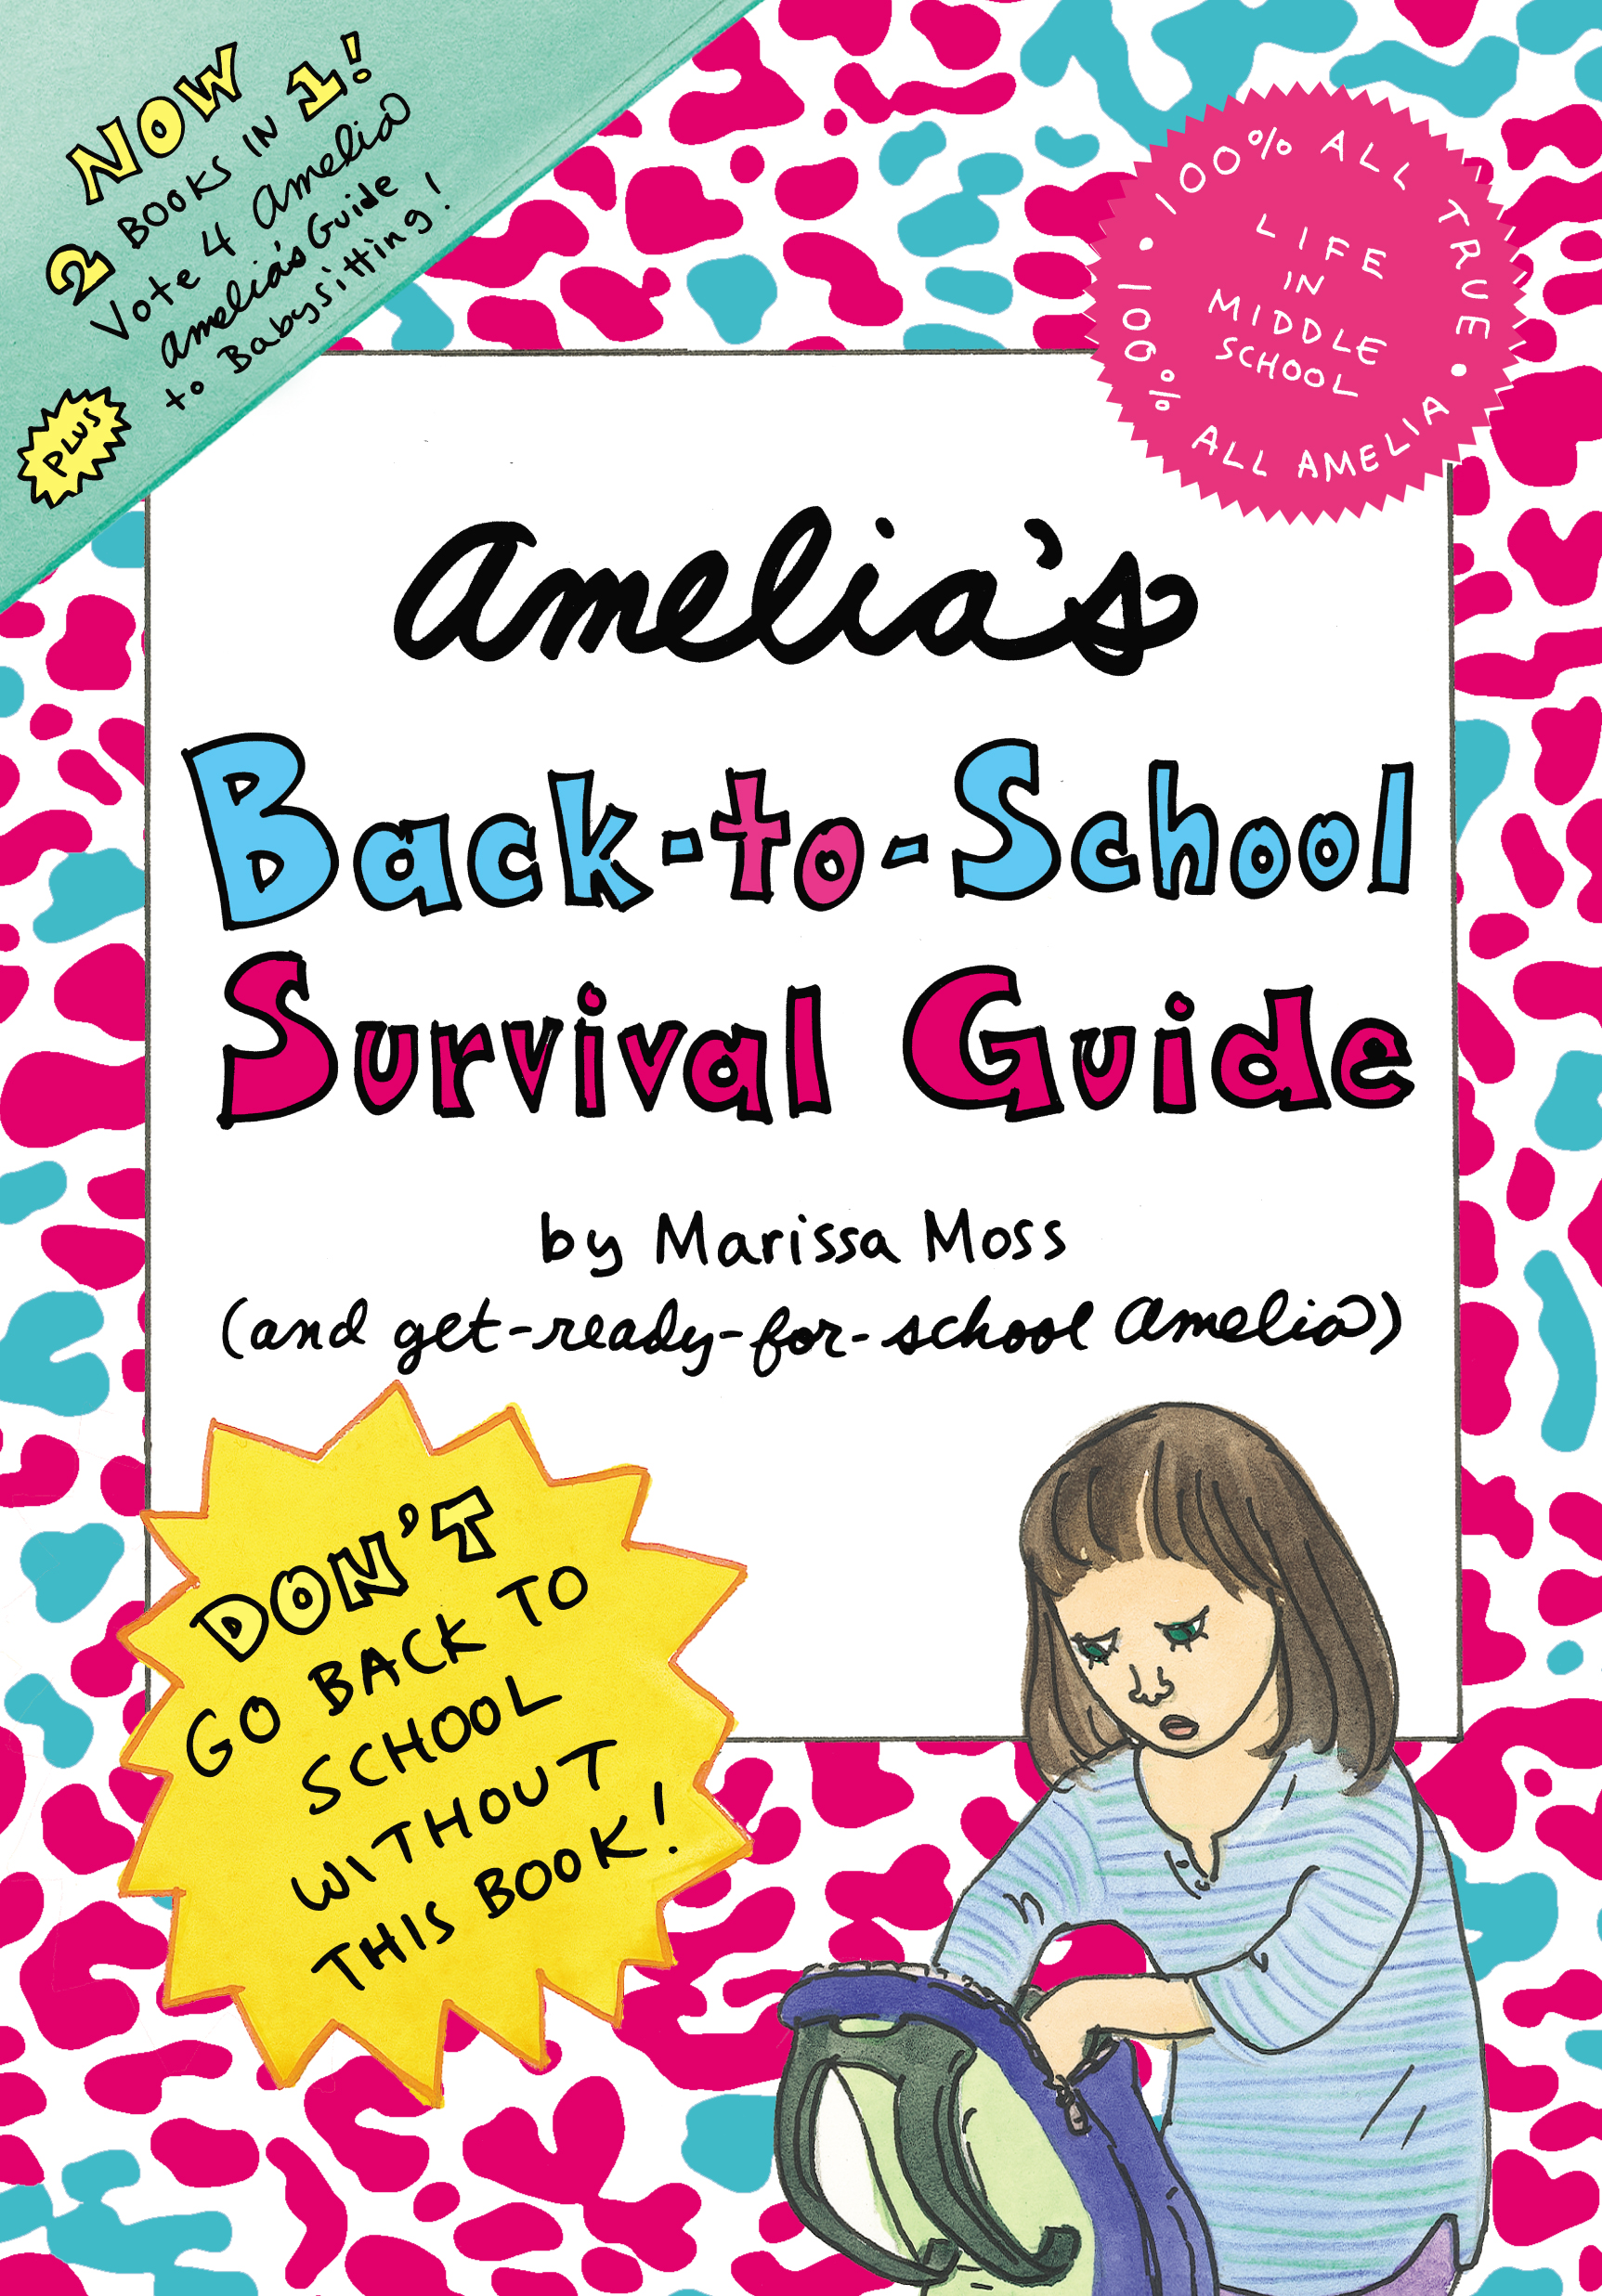 How to Write a Survival Guide